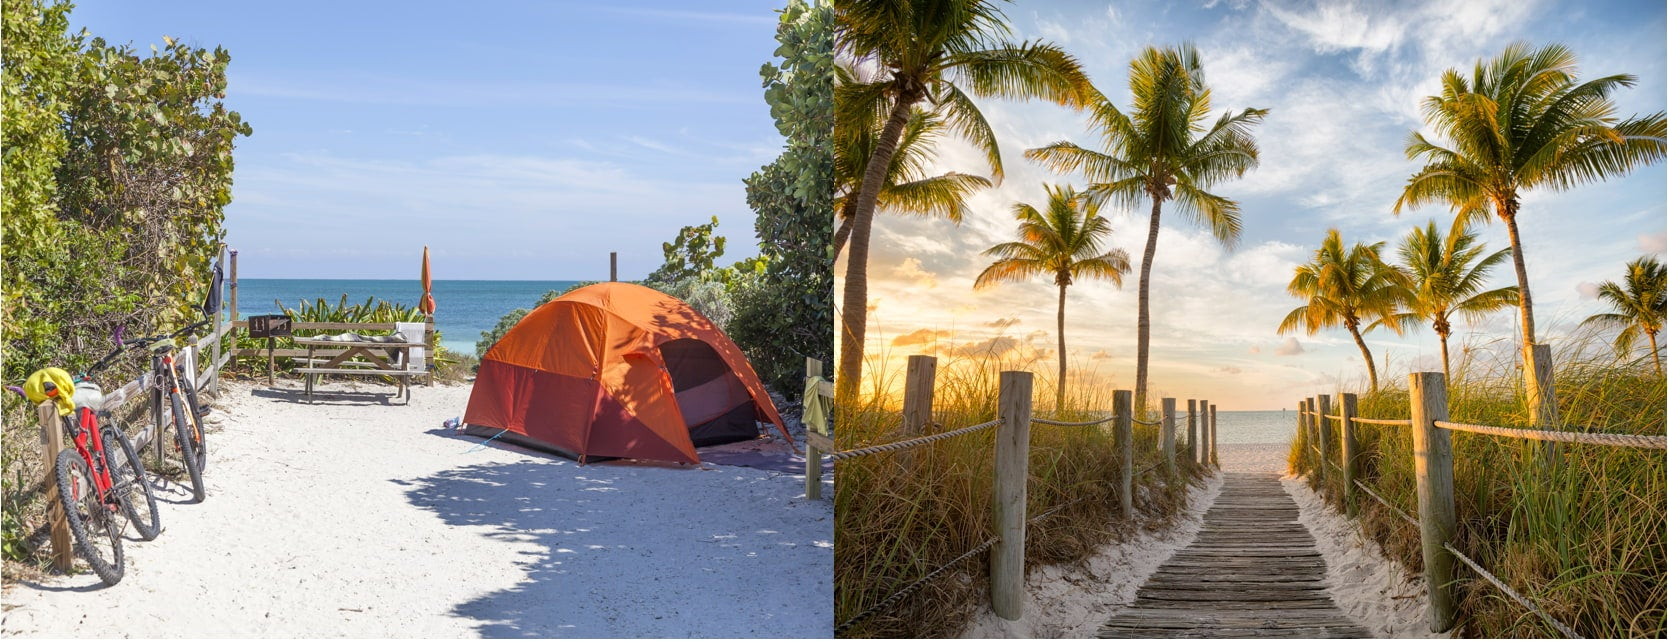 6 Key West Camping Spots For Every